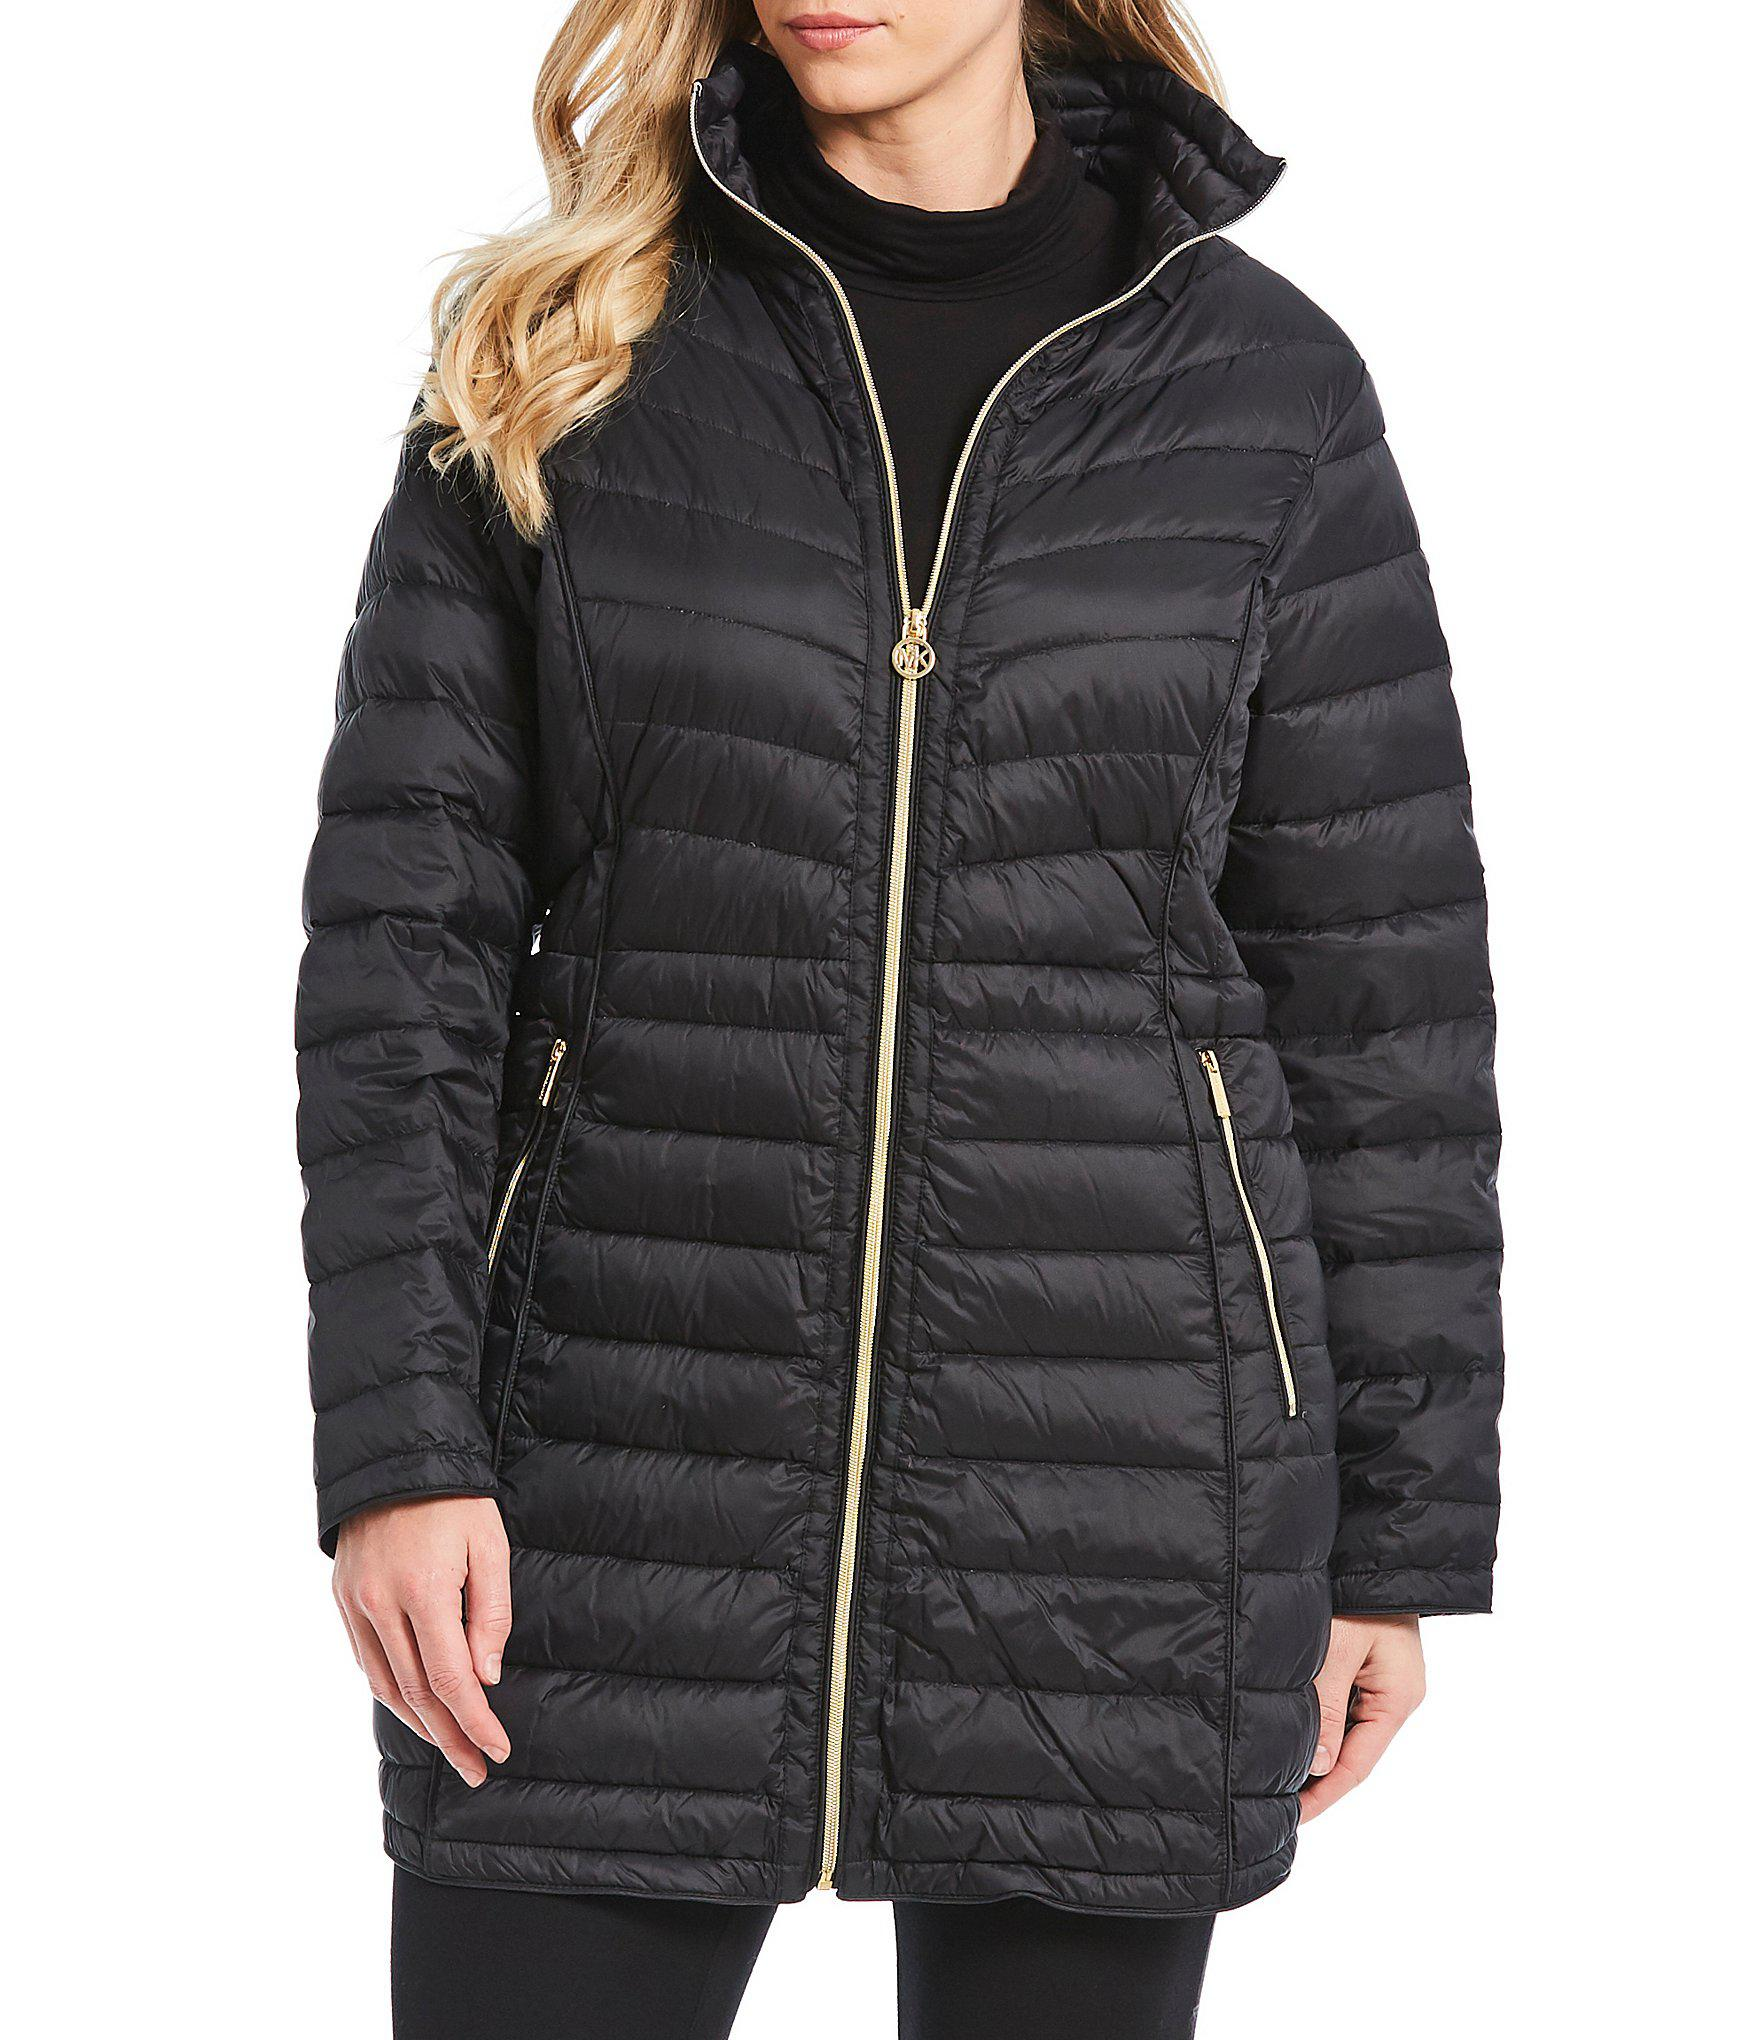 87dc51e523d Lyst - MICHAEL Michael Kors Plus Size Puffer Down Packable ...